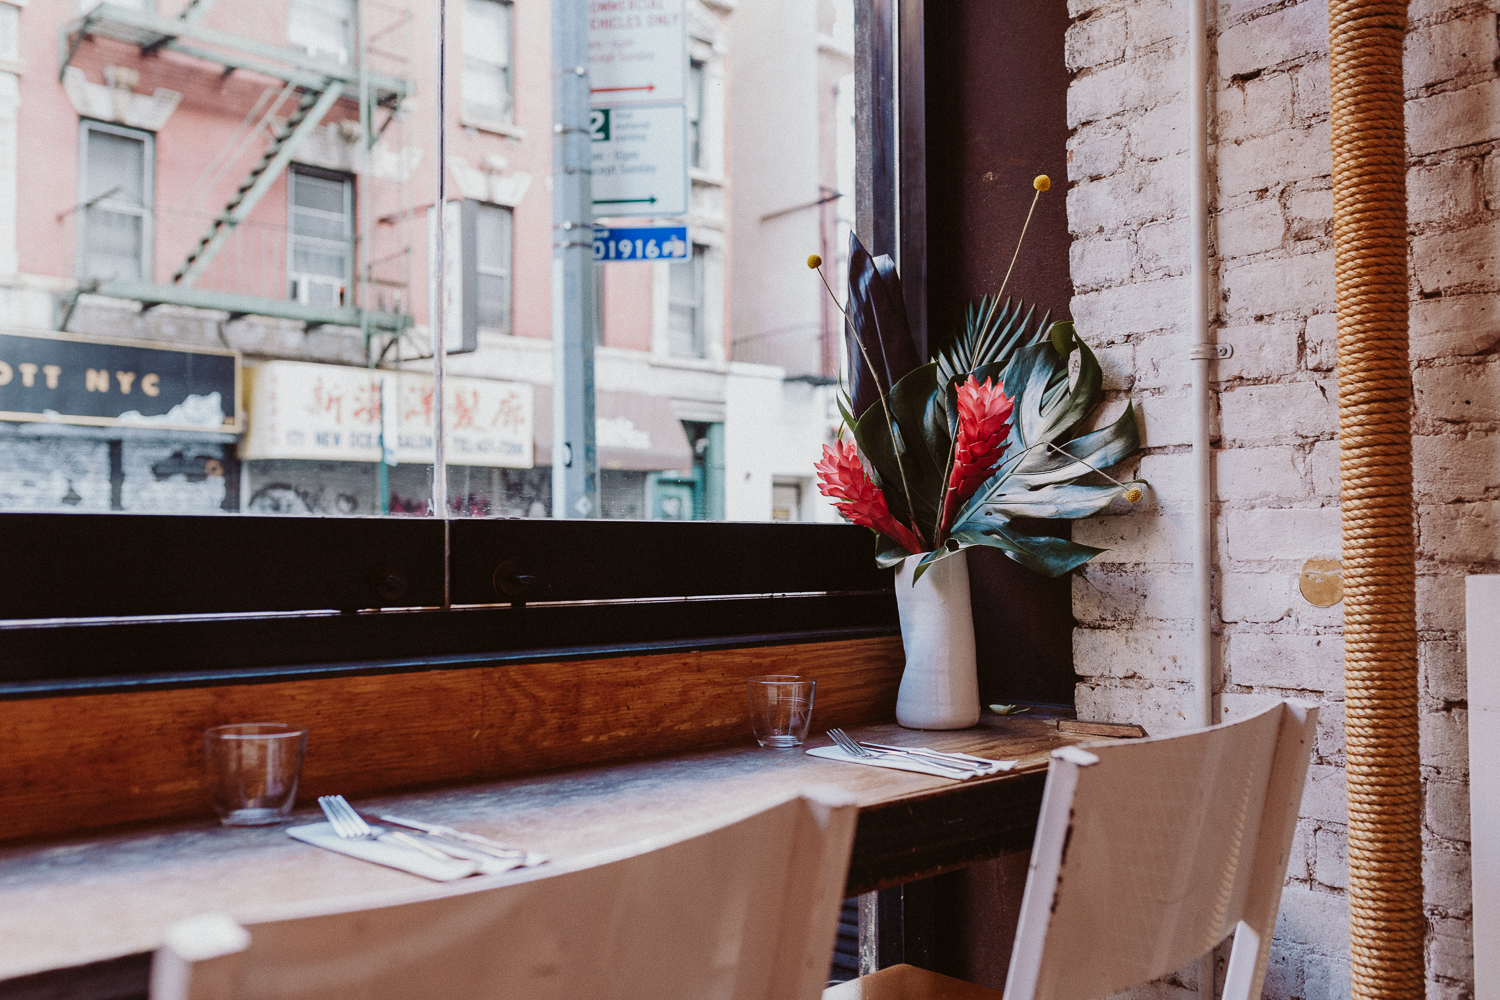 New York City Food Guide: where to eat in New York City? | Bikinis & Passports